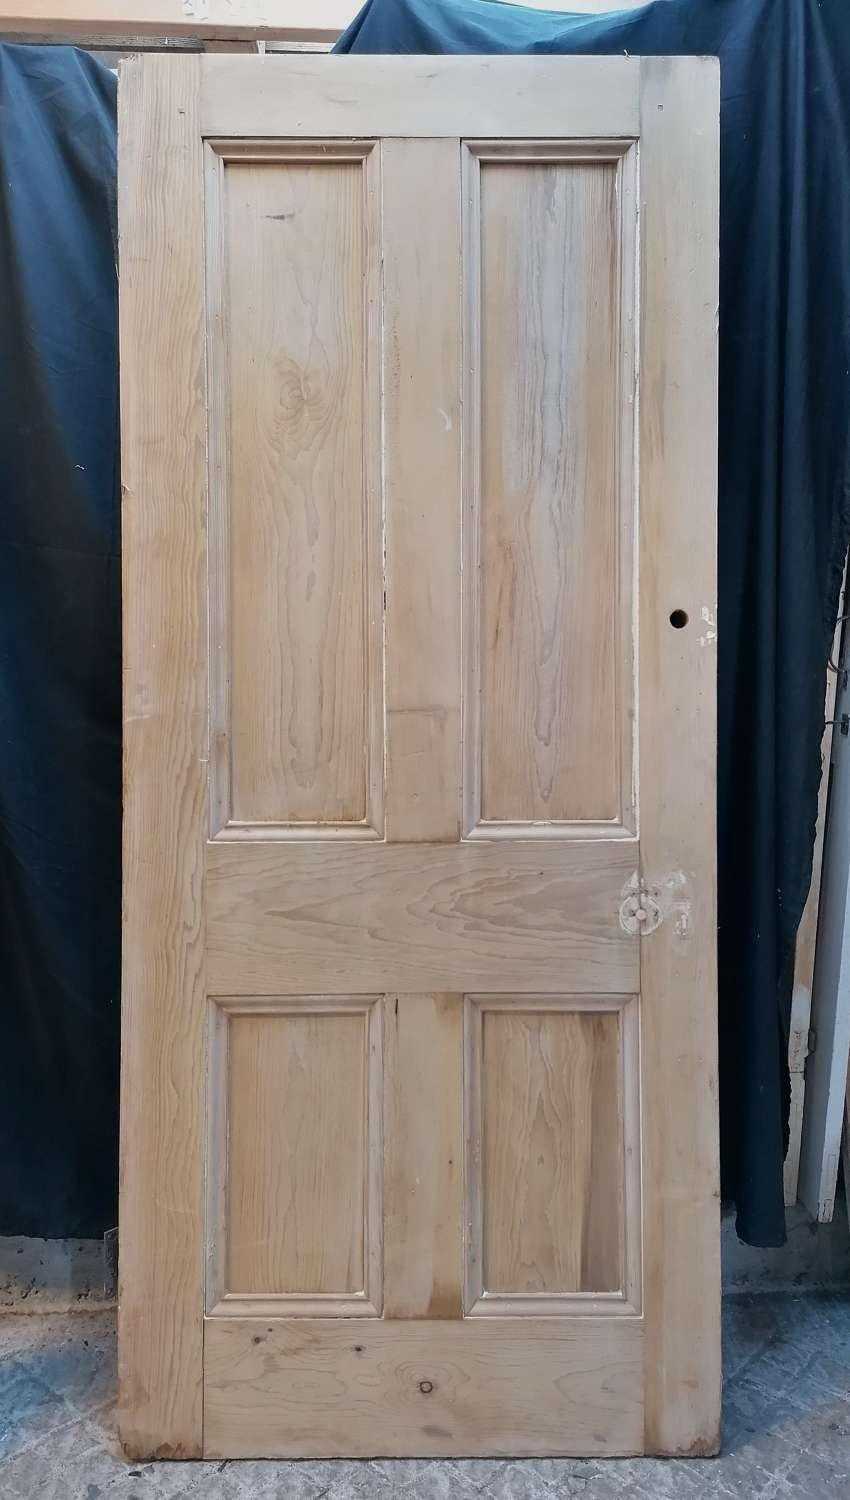 DI0730 A LARGE RECLAIMED STRIPPED PINE 4 PANEL INTERNAL DOOR